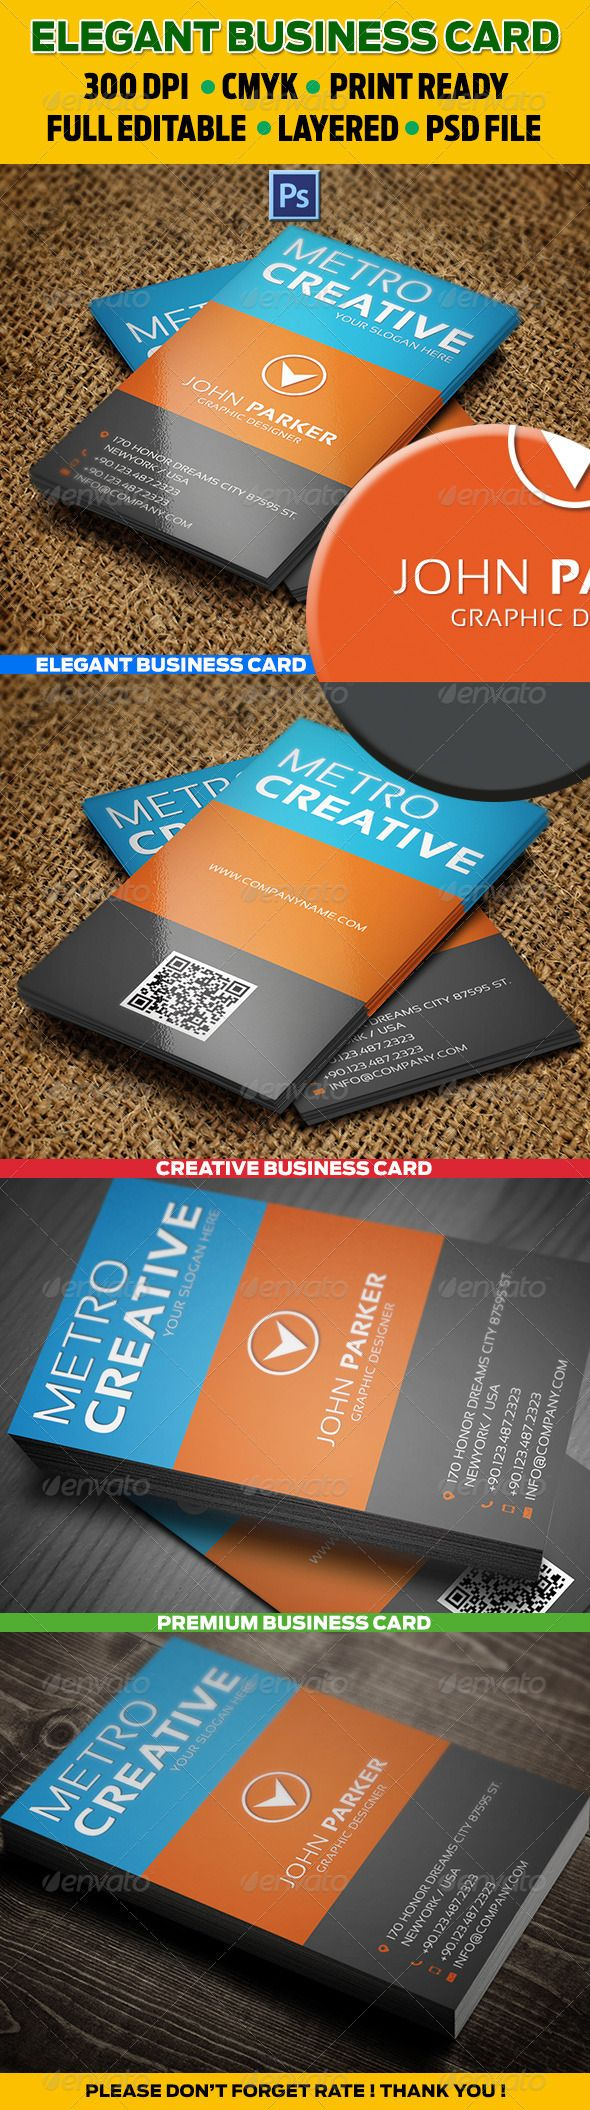 109 best print templates images on pinterest print templates creative business card 50 reheart Image collections